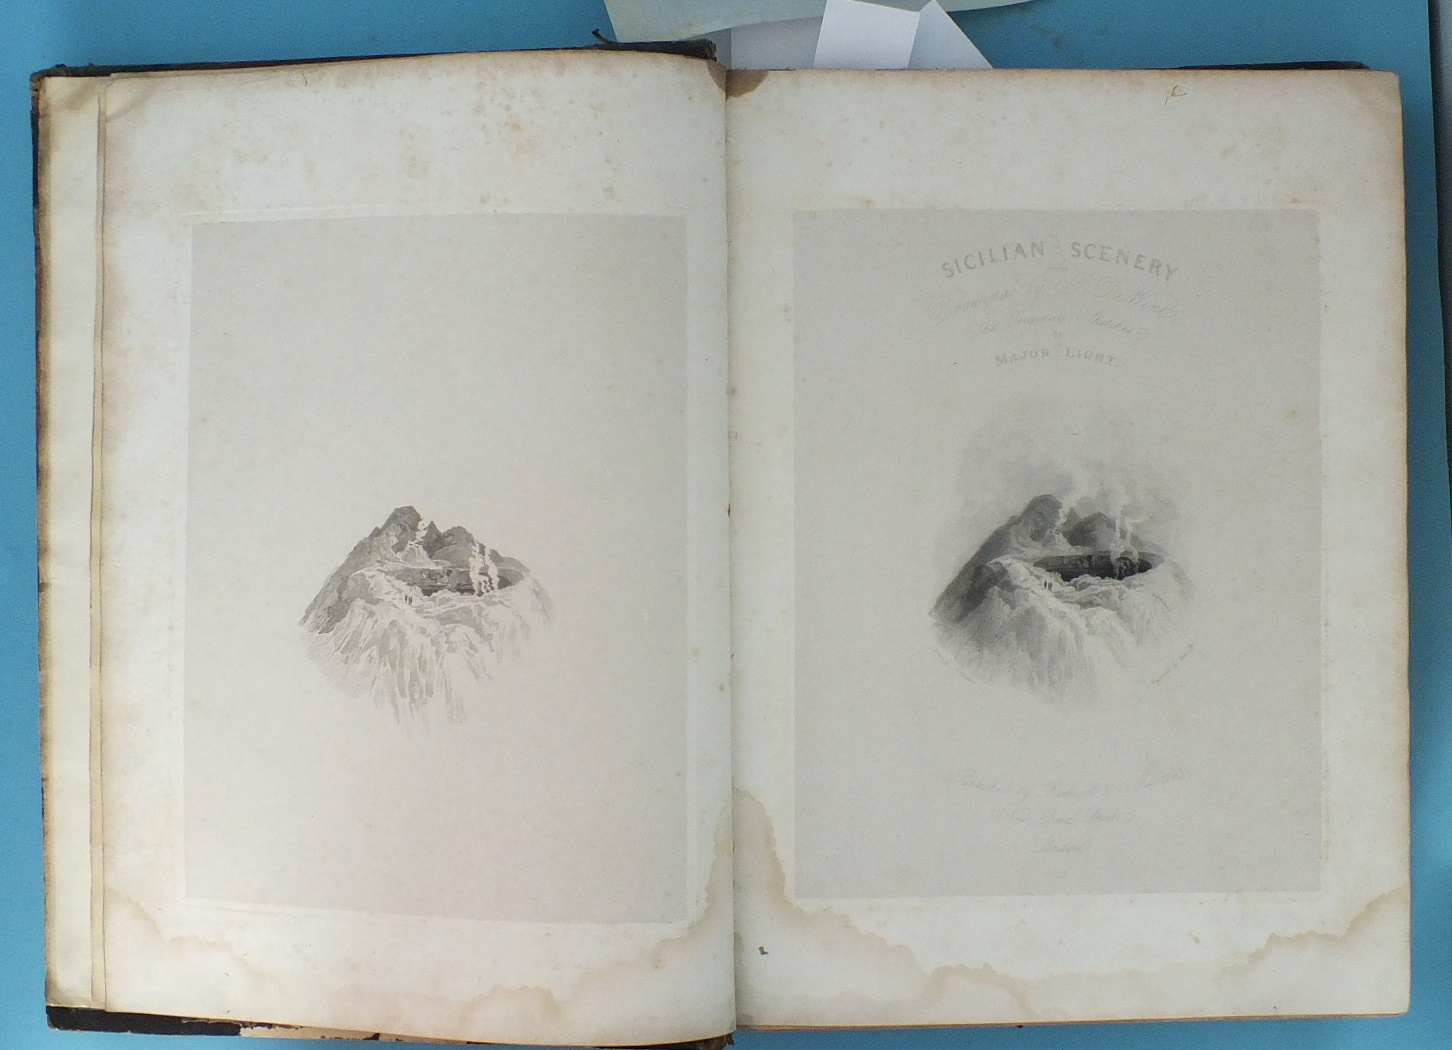 Lot 212 - De Wint (Peter) and Light (Maj. William), Sicilian Scenery, from Drawings by P de Wint, The Original